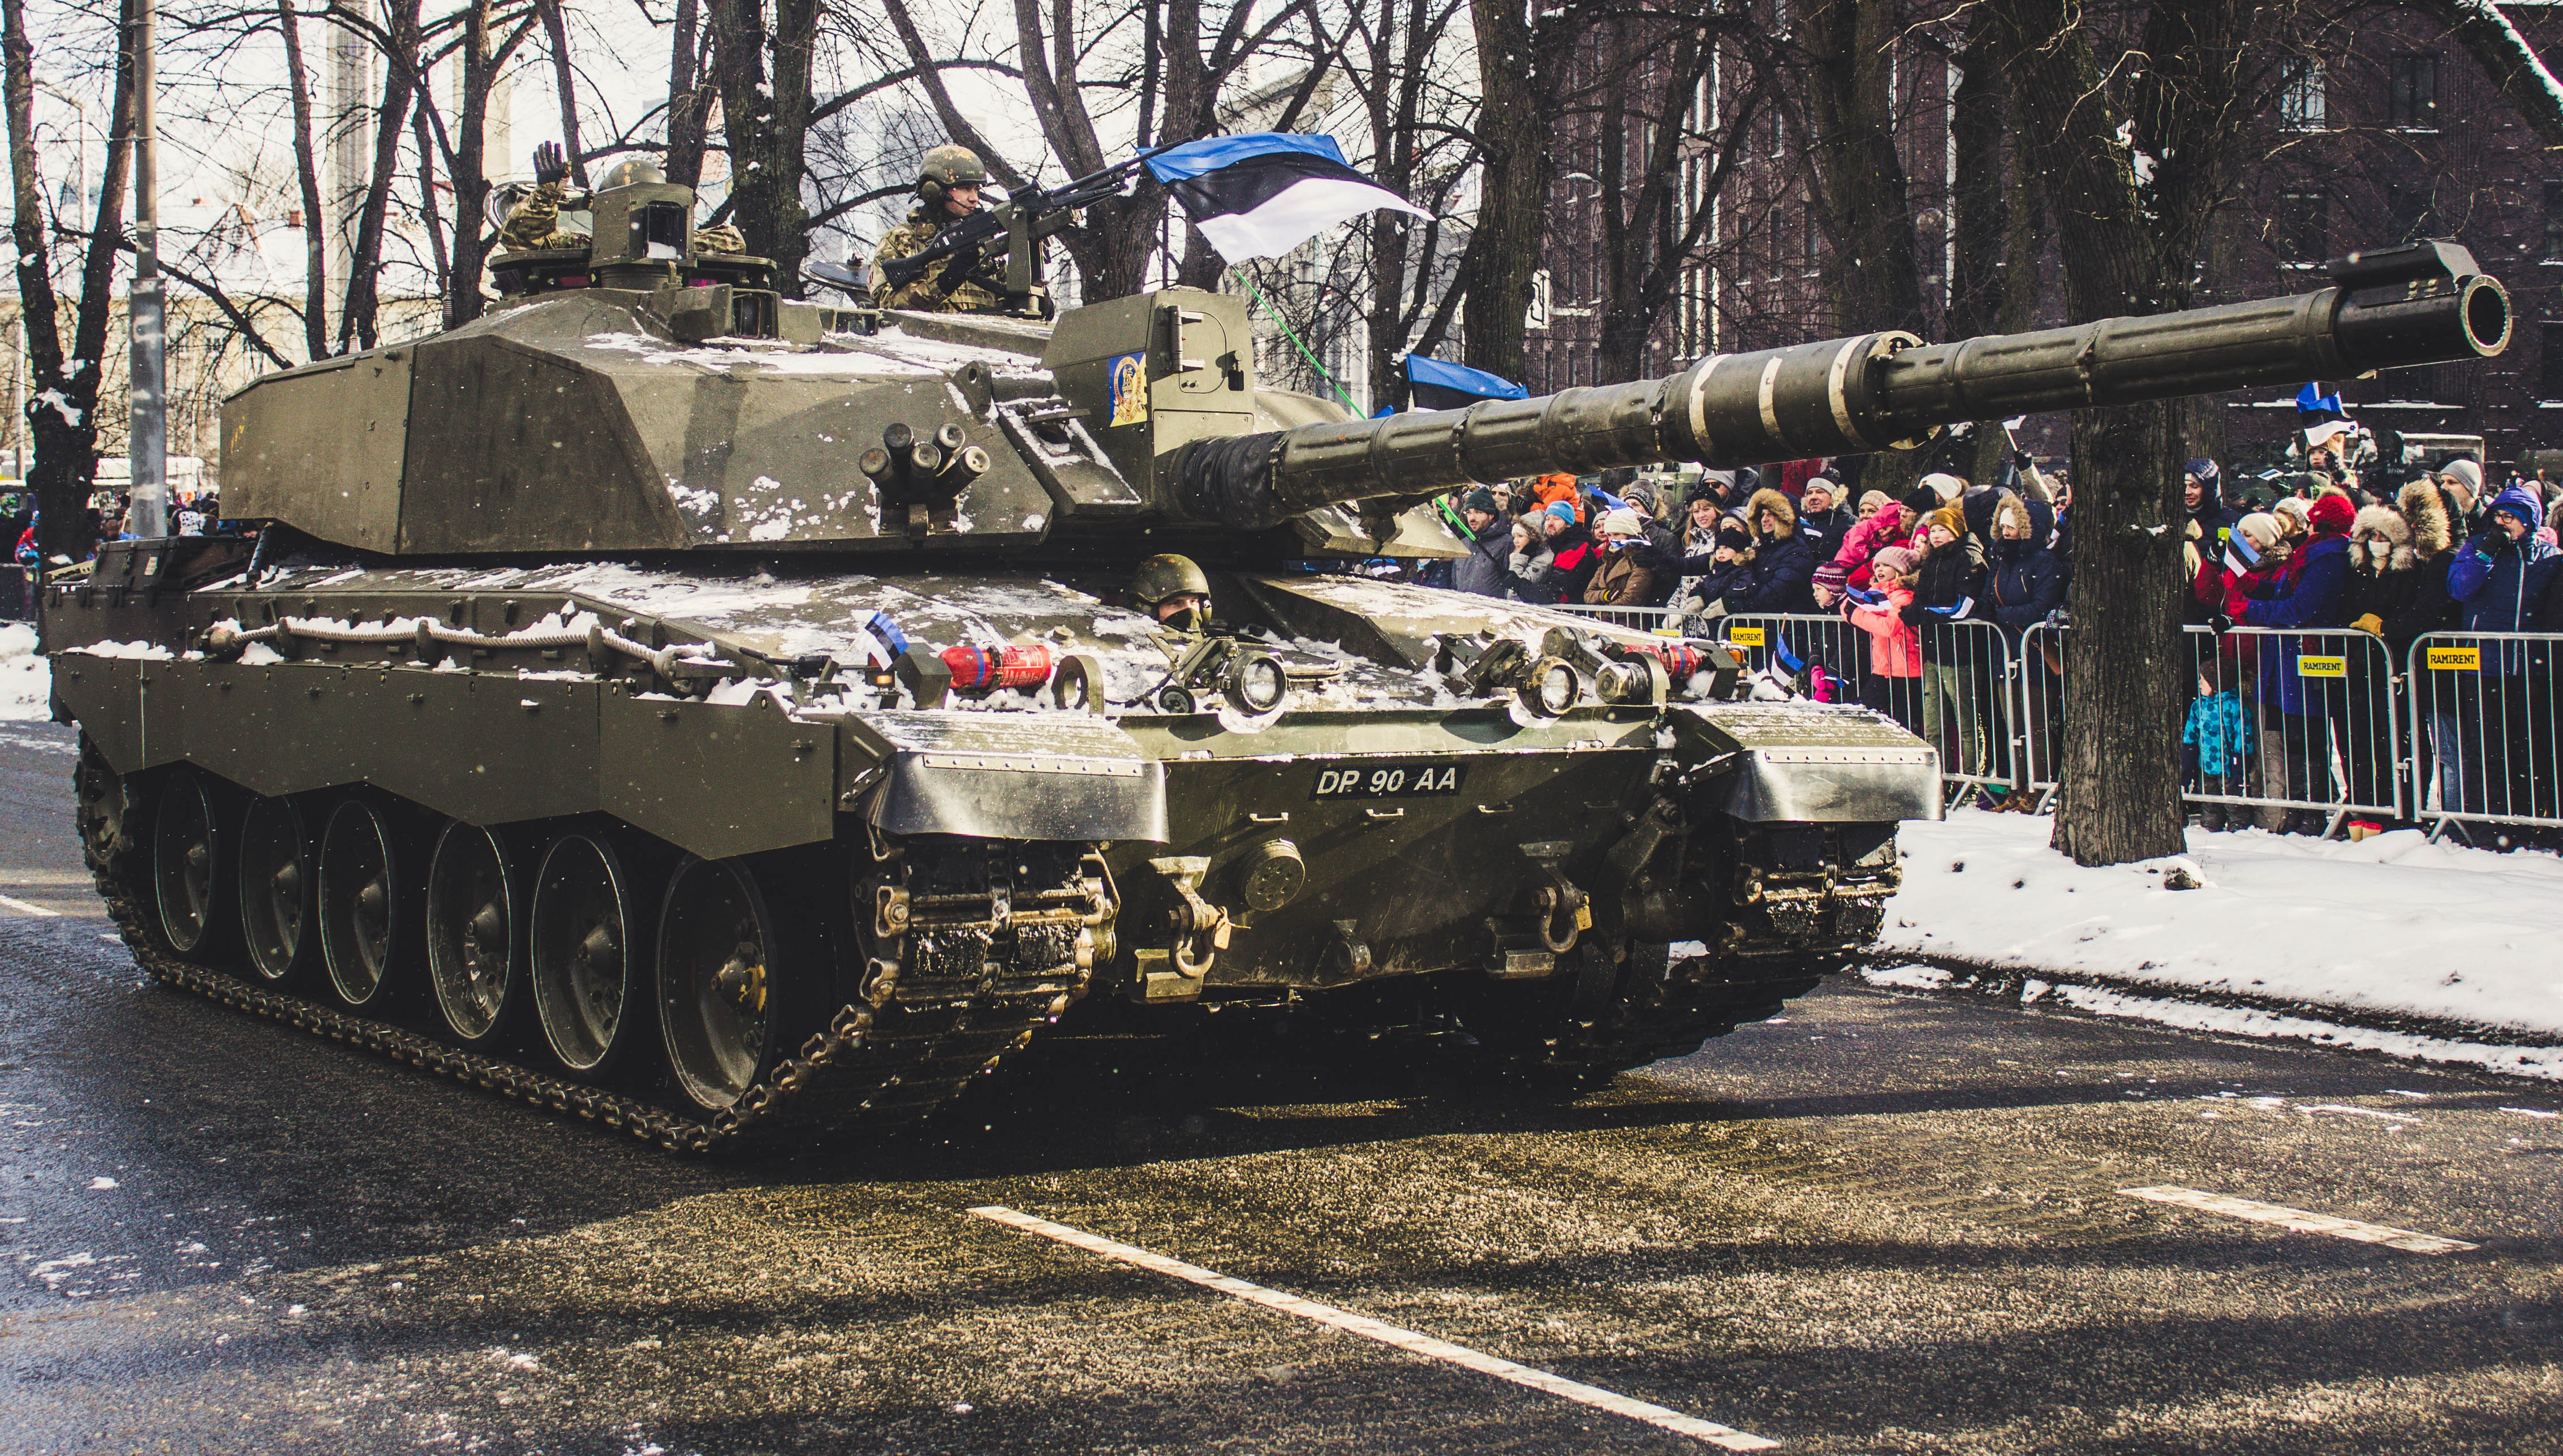 Soldier tank on road photo